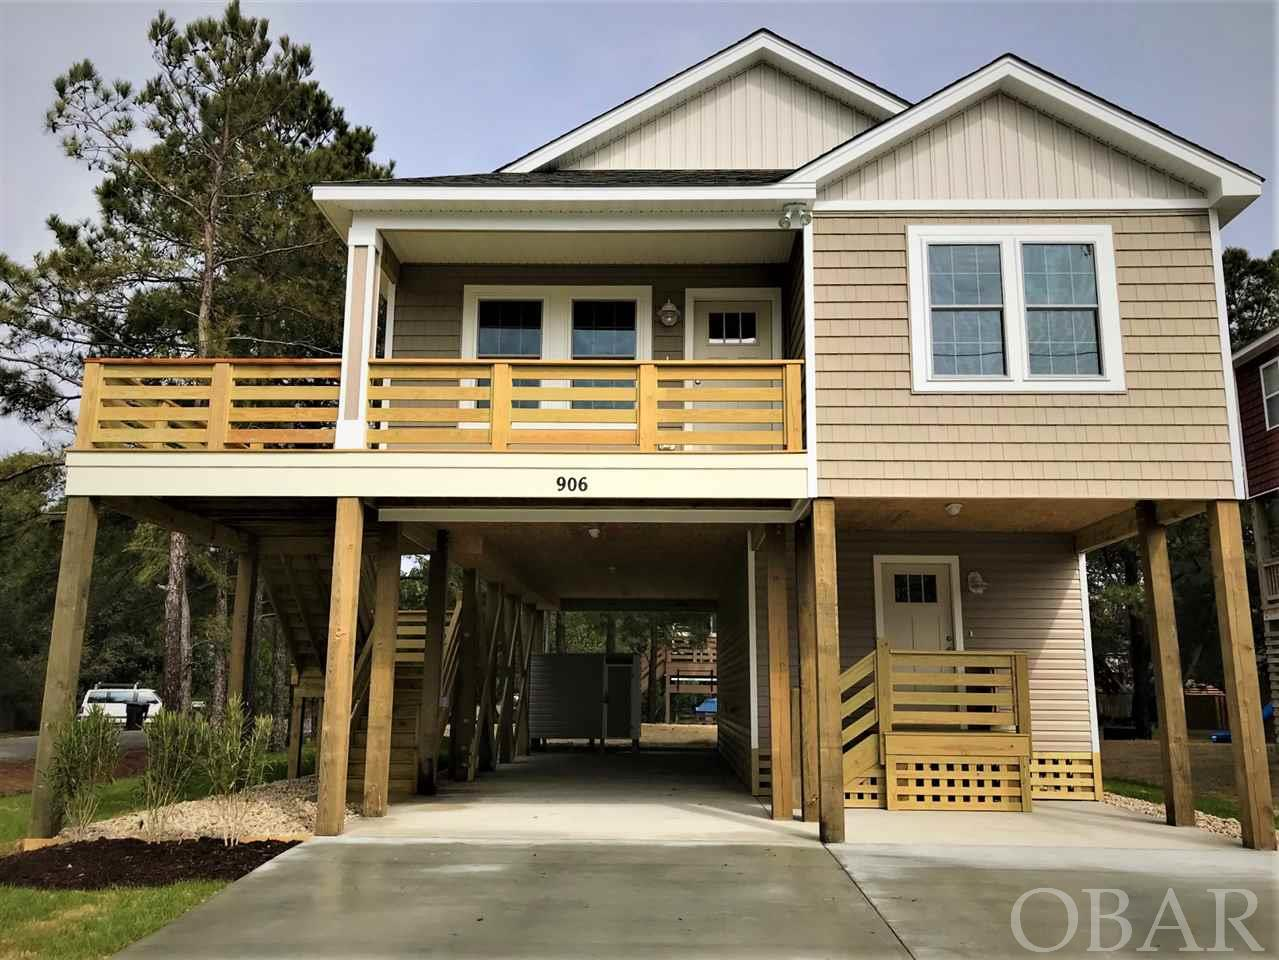 906 Third Street, Kill Devil Hills, NC 27948, 4 Bedrooms Bedrooms, ,3 BathroomsBathrooms,Residential,For sale,Third Street,104431